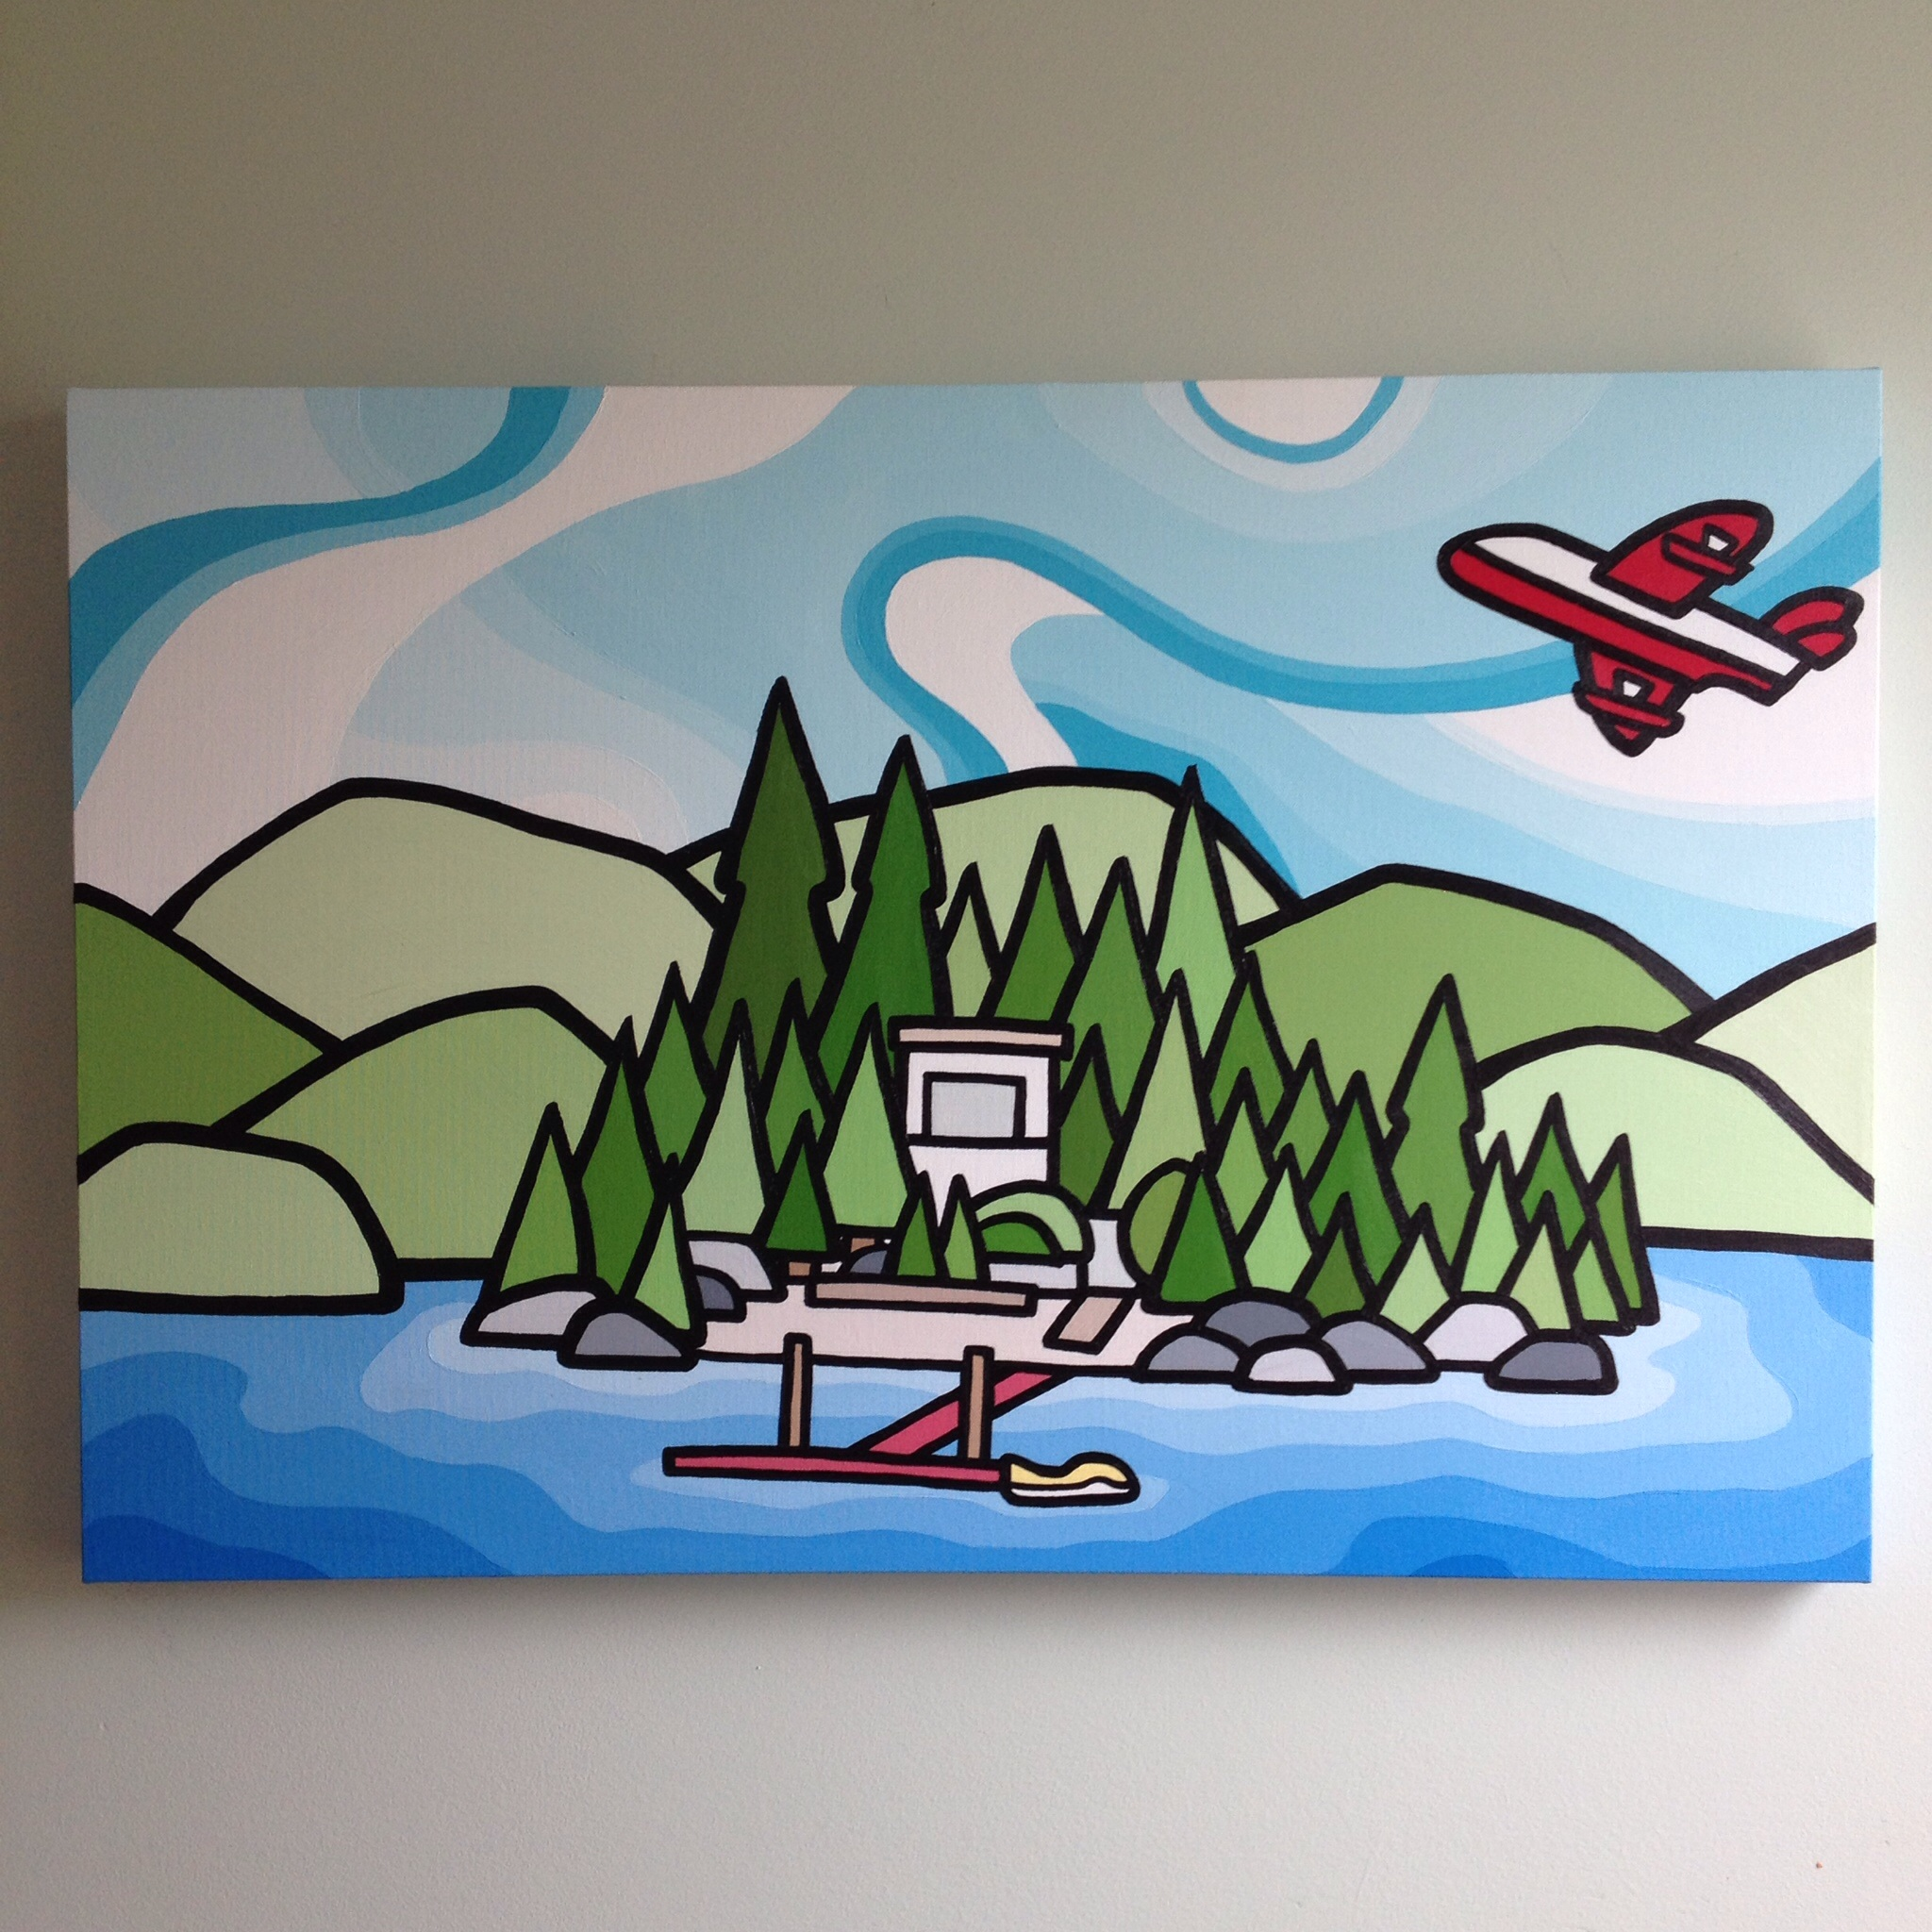 """Title: Sproat Lake Cabin & The Bomber. 24""""x36"""" acrylic on canvas. SOLD - commission"""